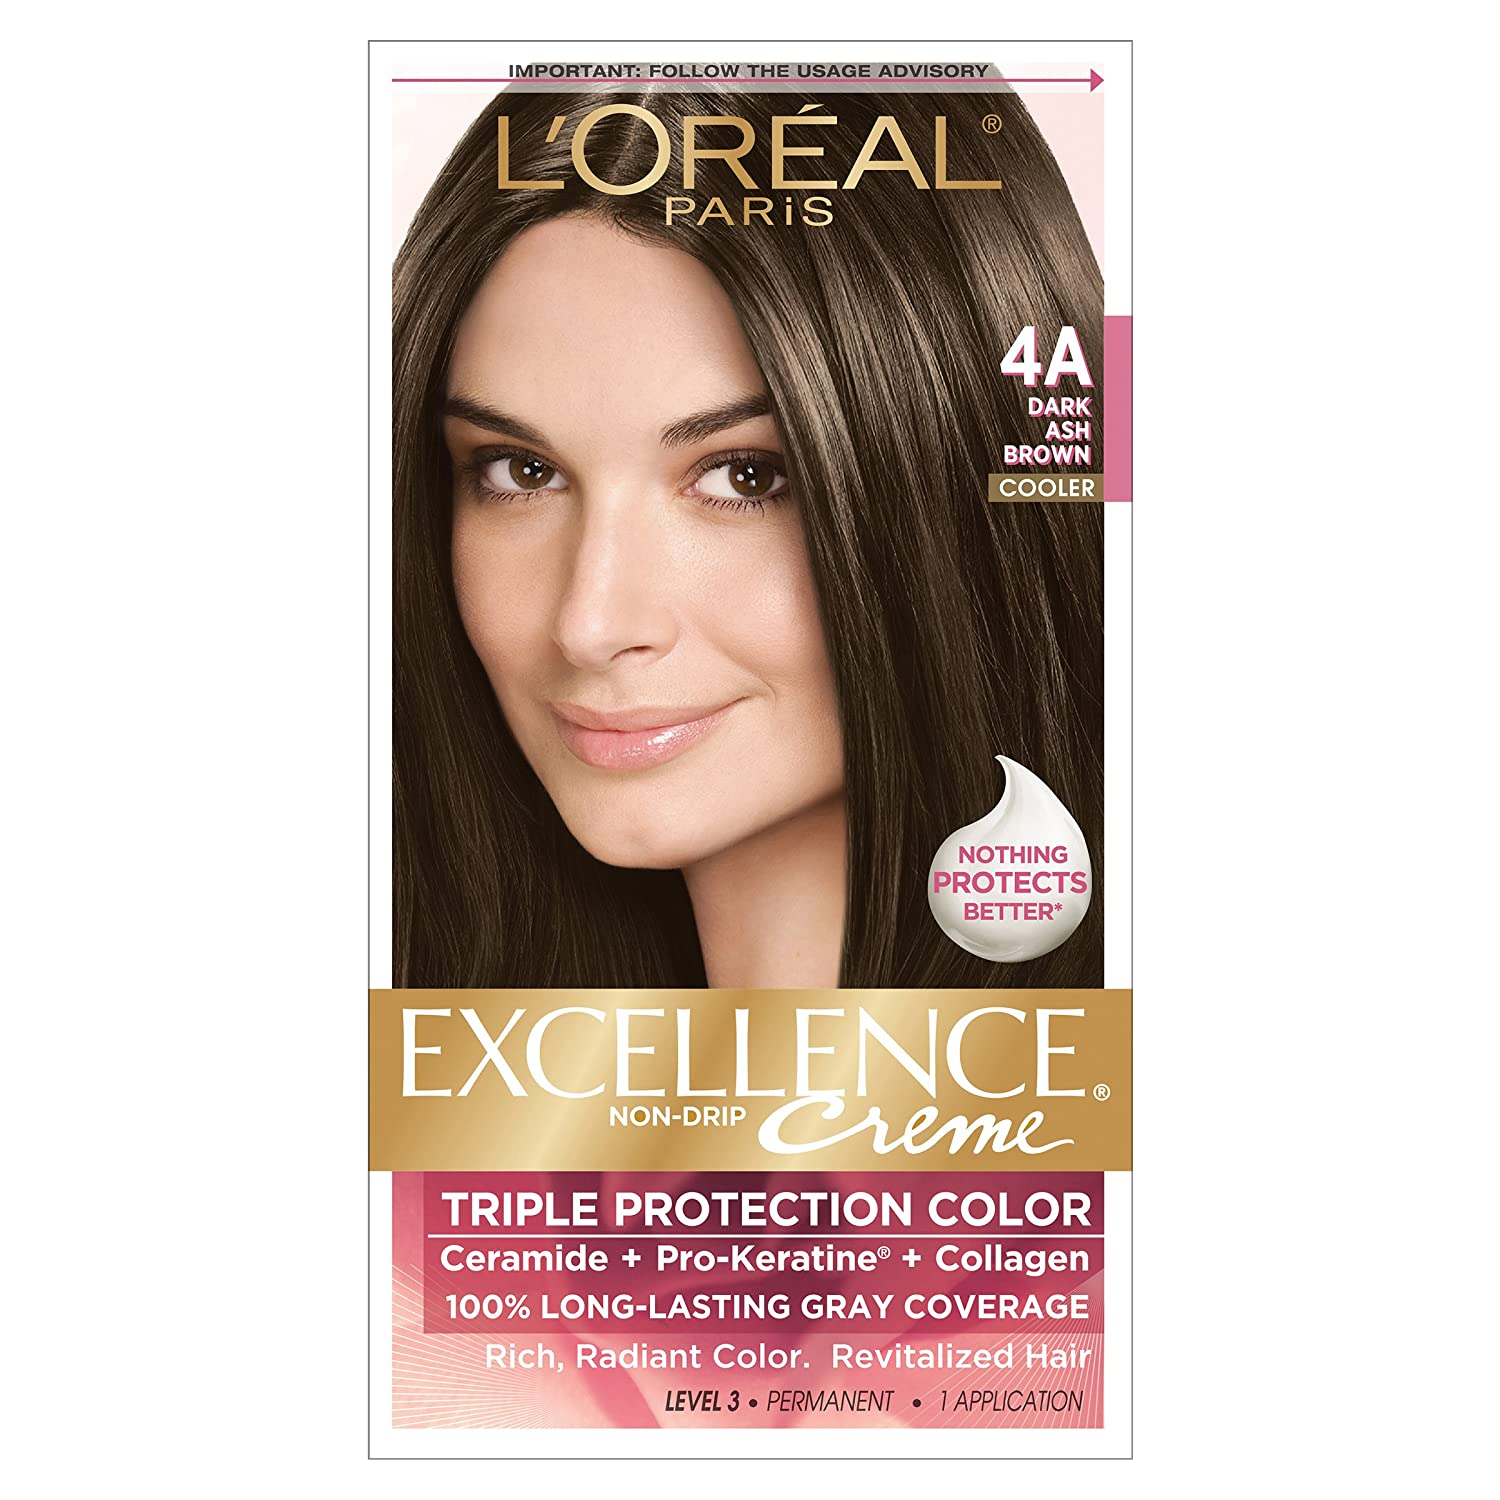 Loreal Paris Excellence Crme Permanent Hair Colour G1 Dark Ash